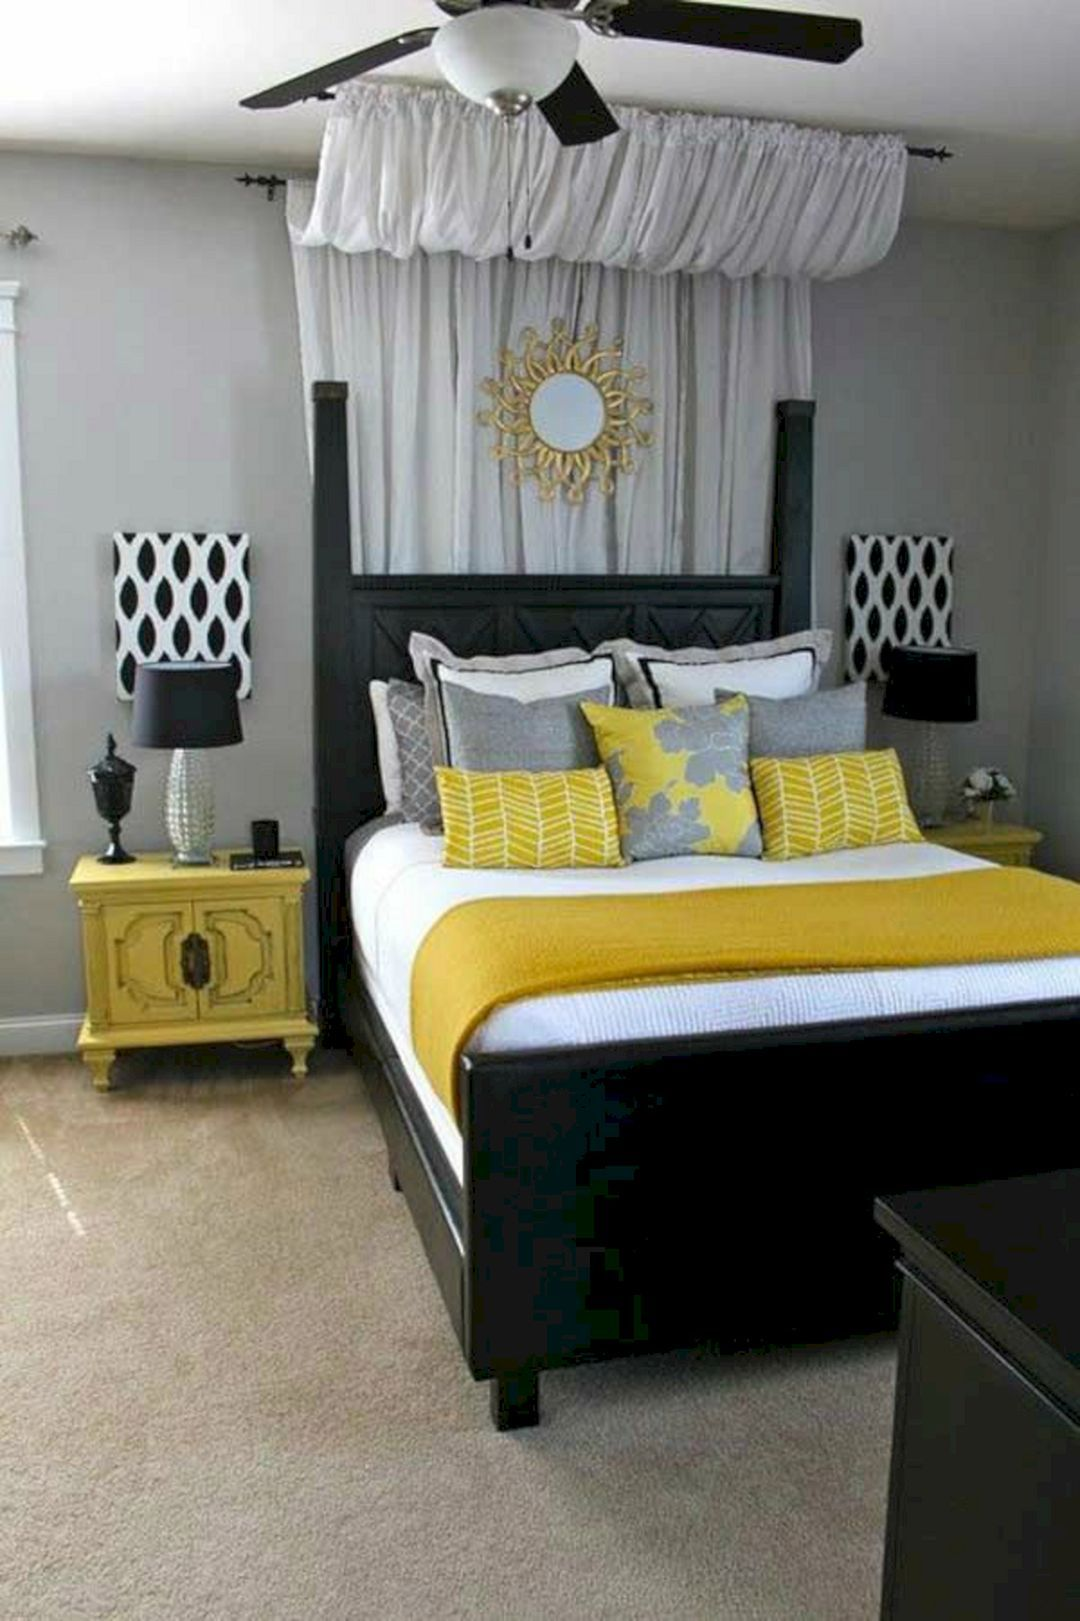 Medium Crop Of Black Bedroom Decorations